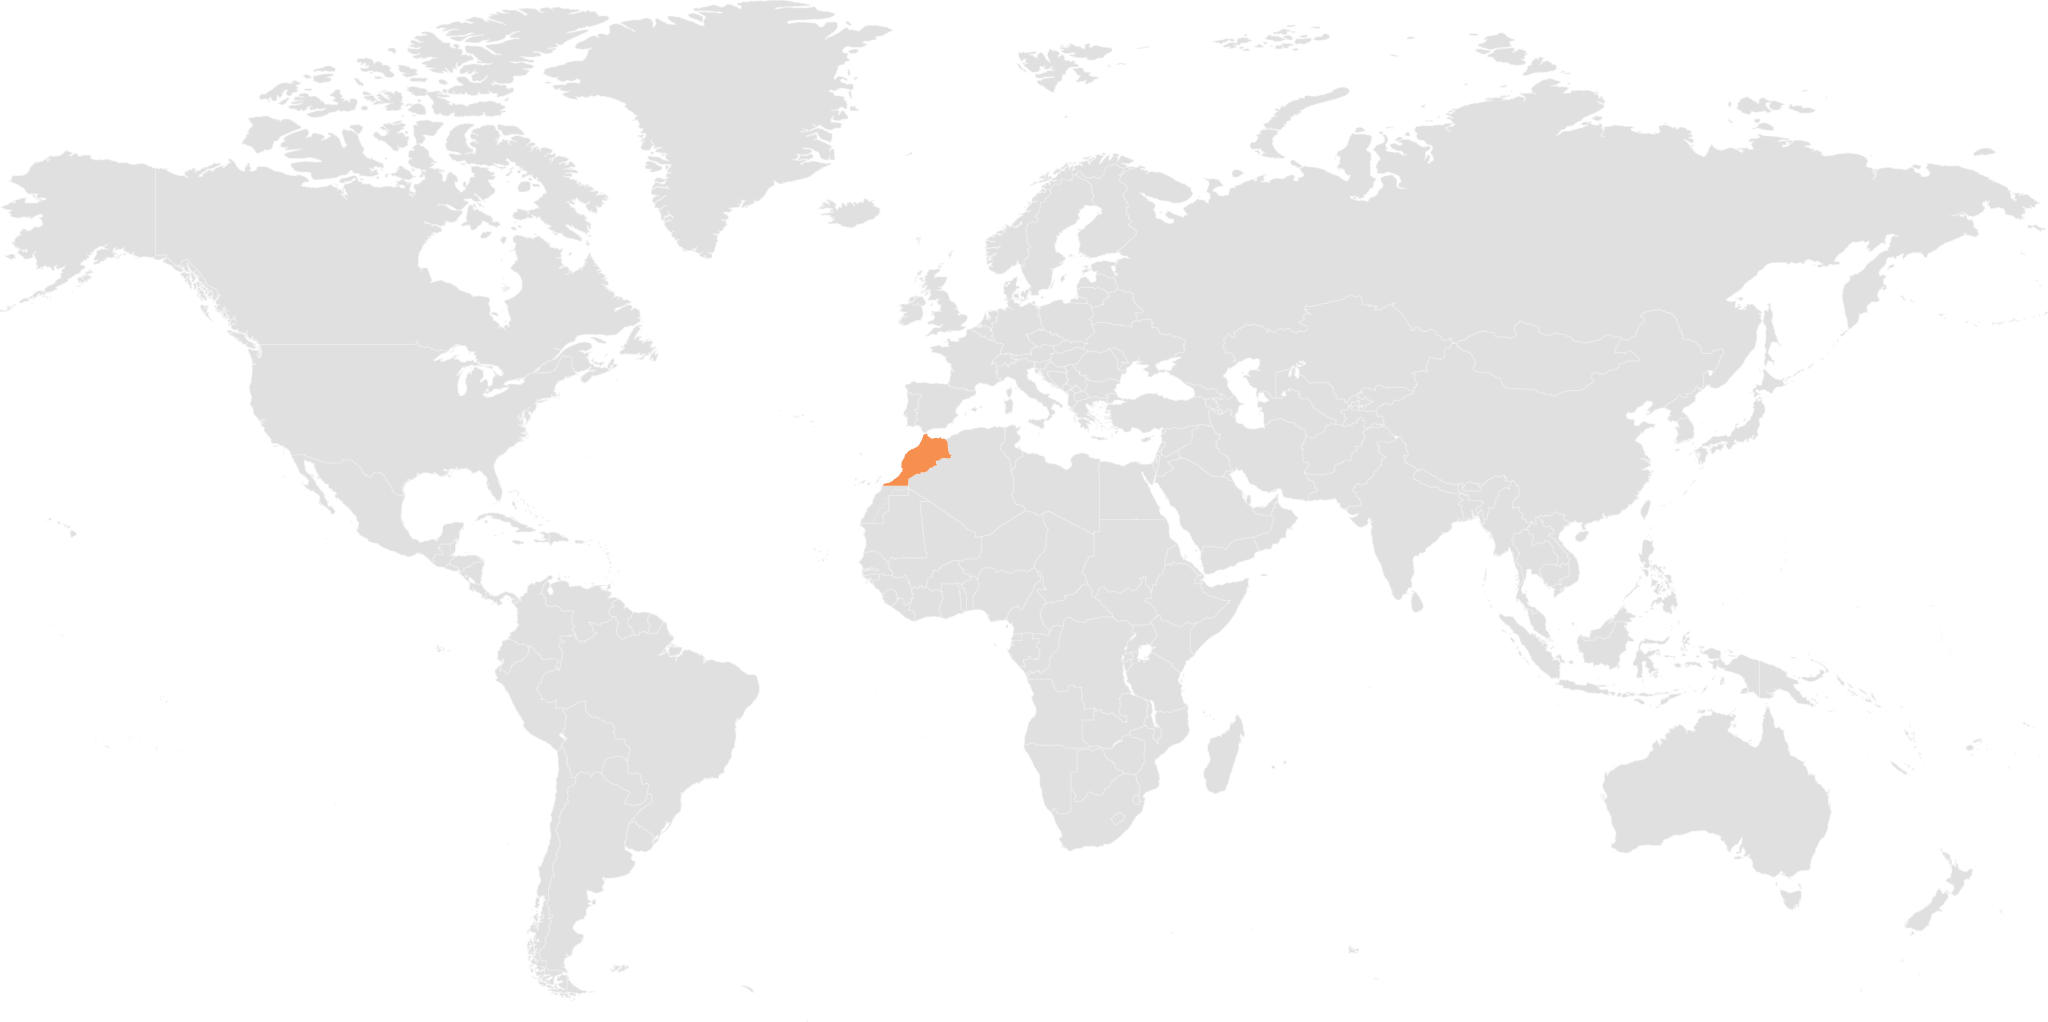 Morocco in the map